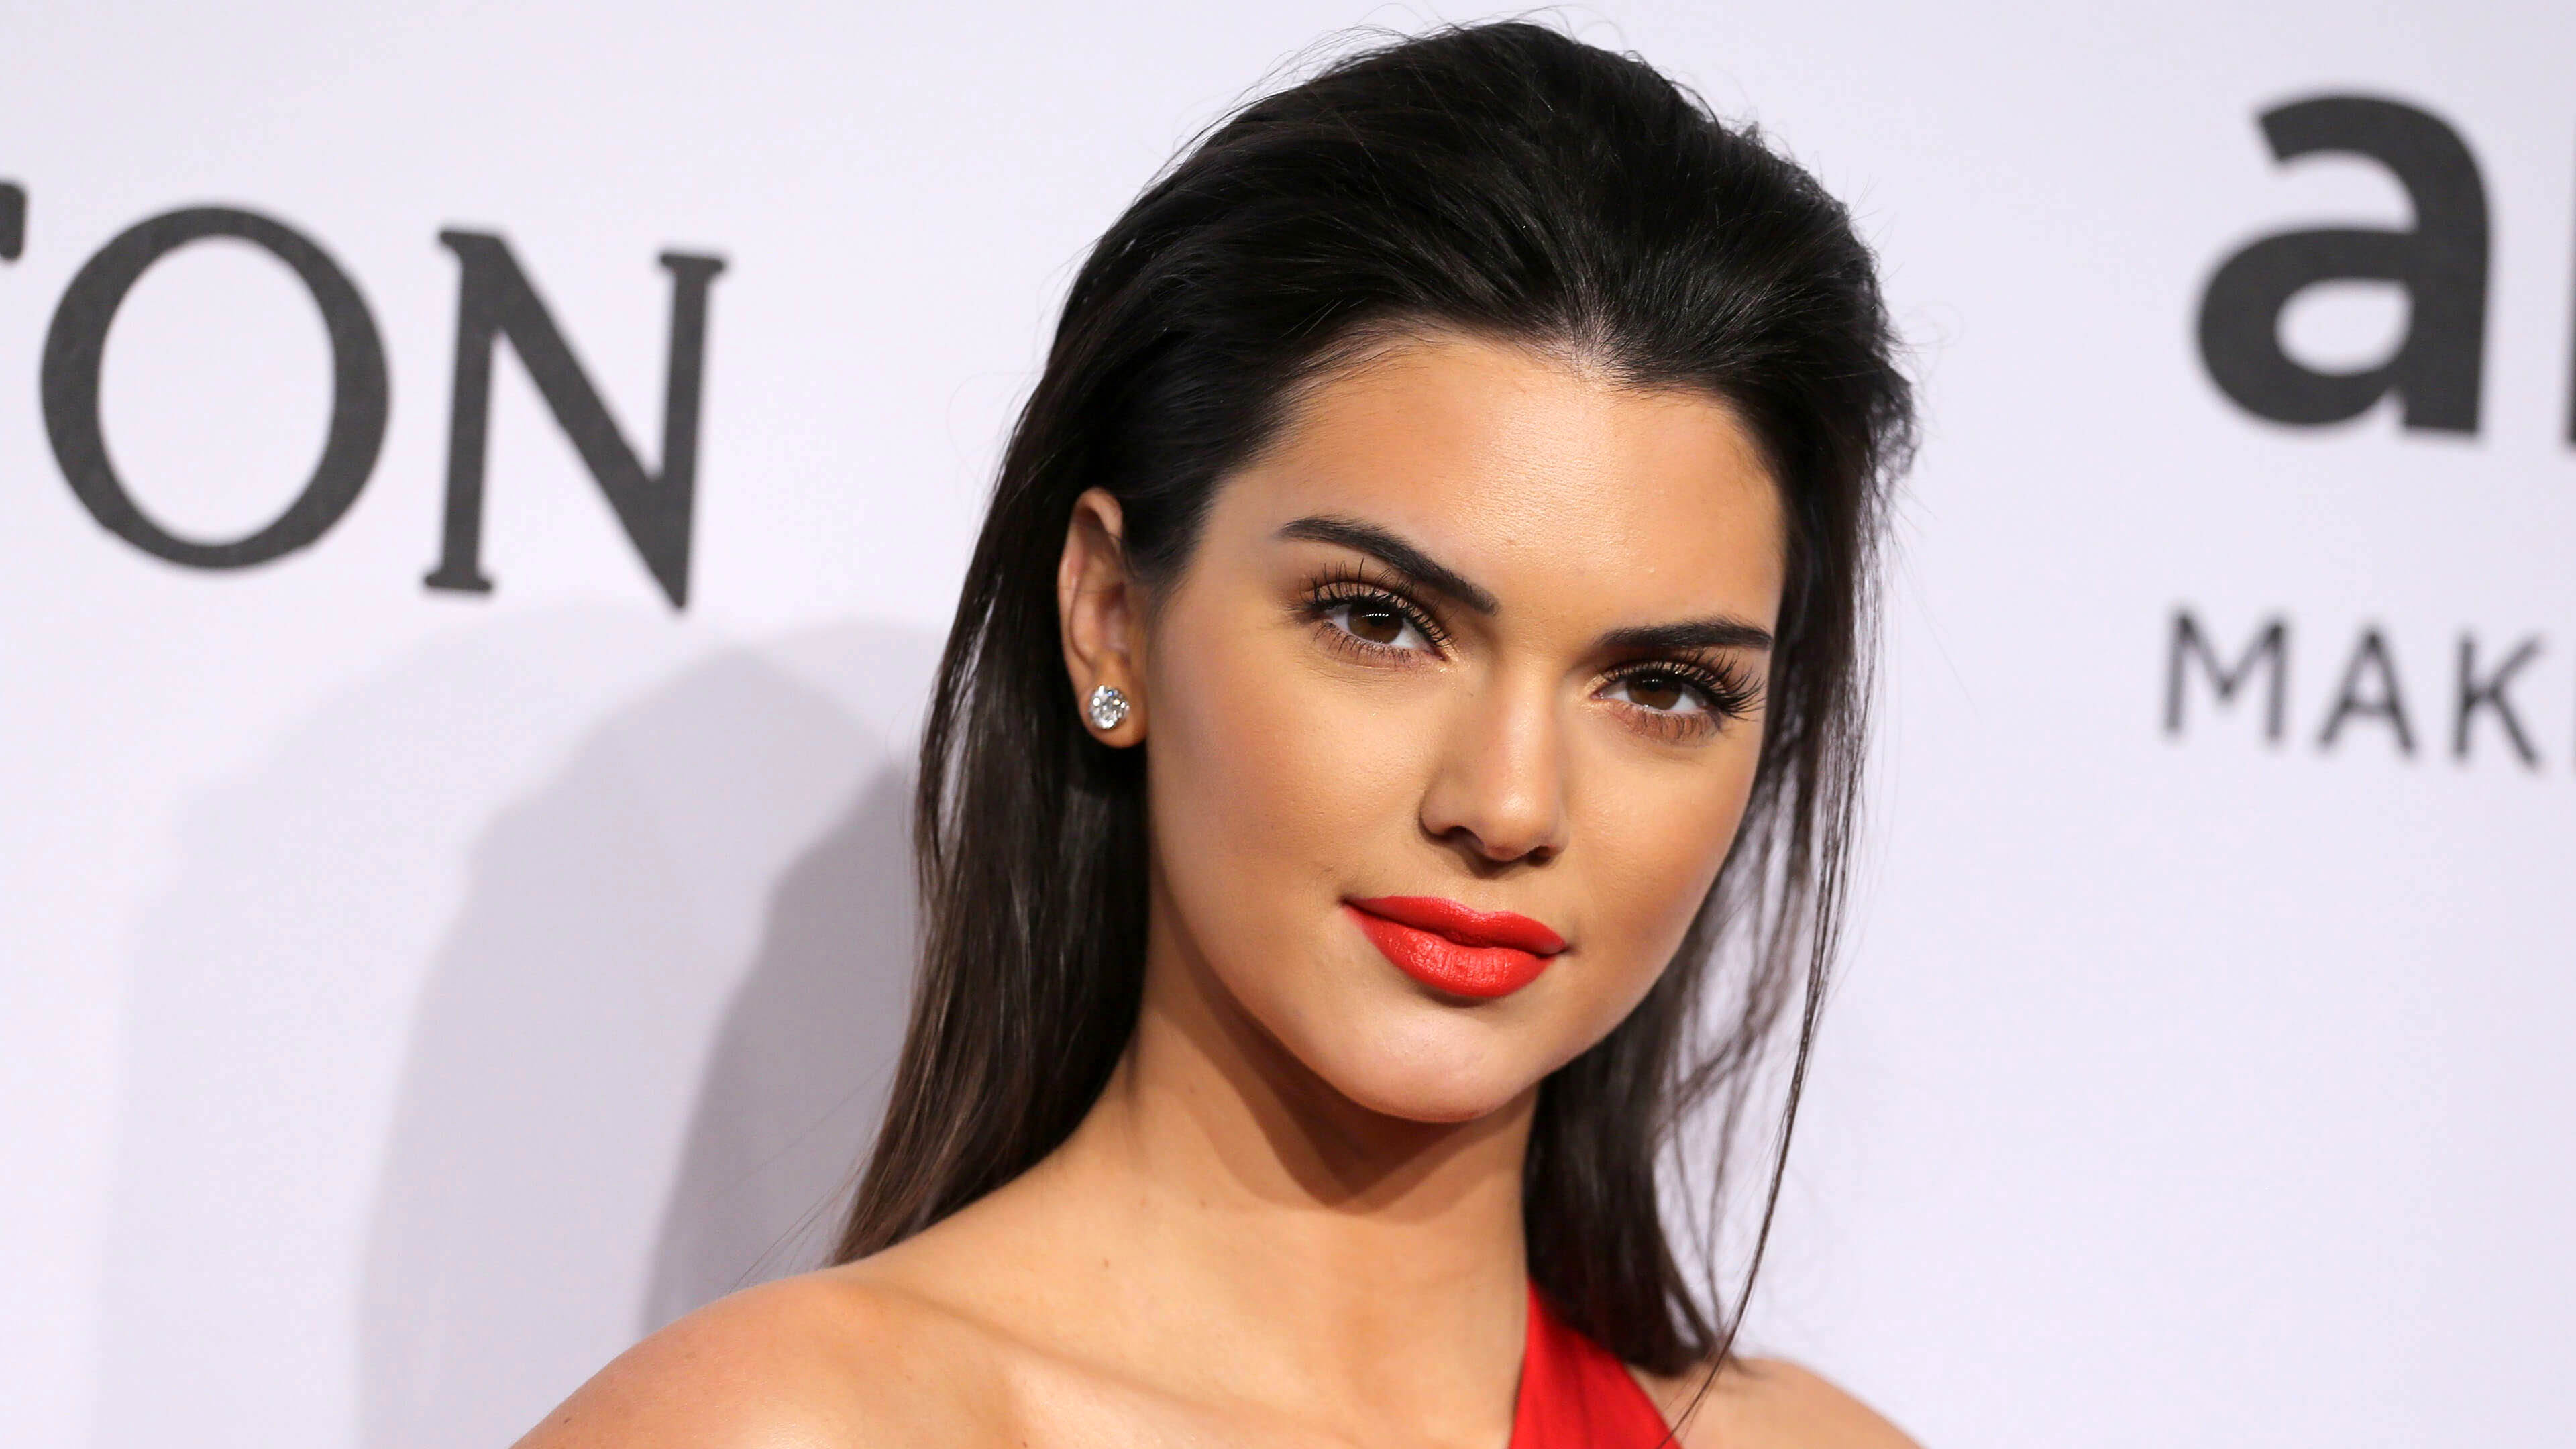 Kendall Jenner Wallpapers Download High Quality HD Images 3840x2160